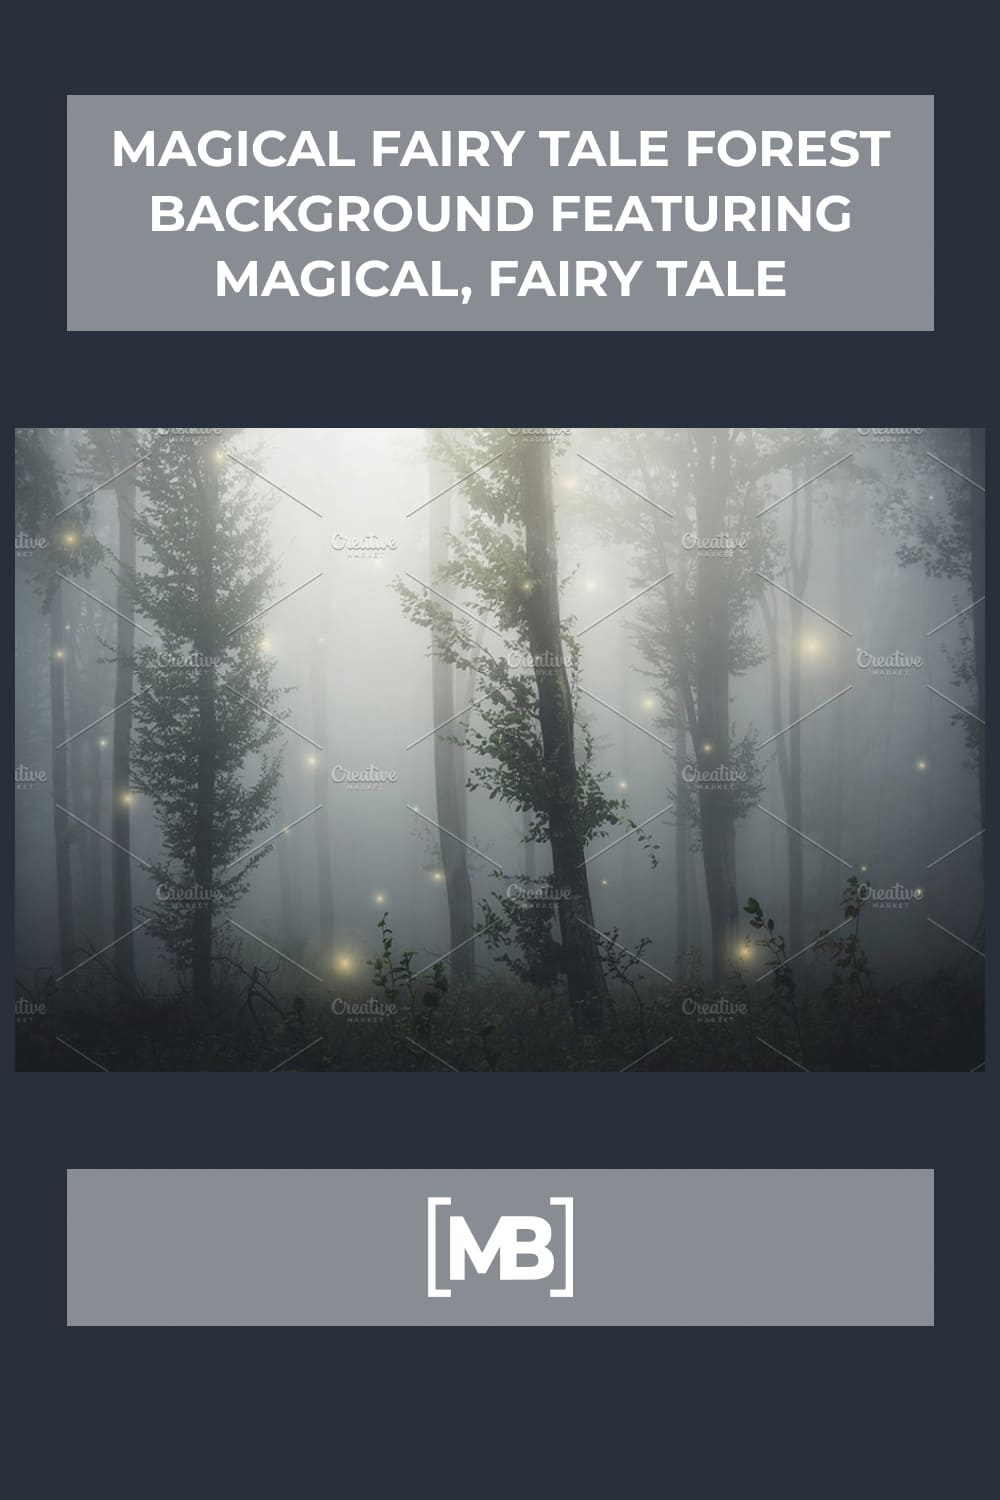 6 Magical fairy tale forest background featuring magical fairy tale